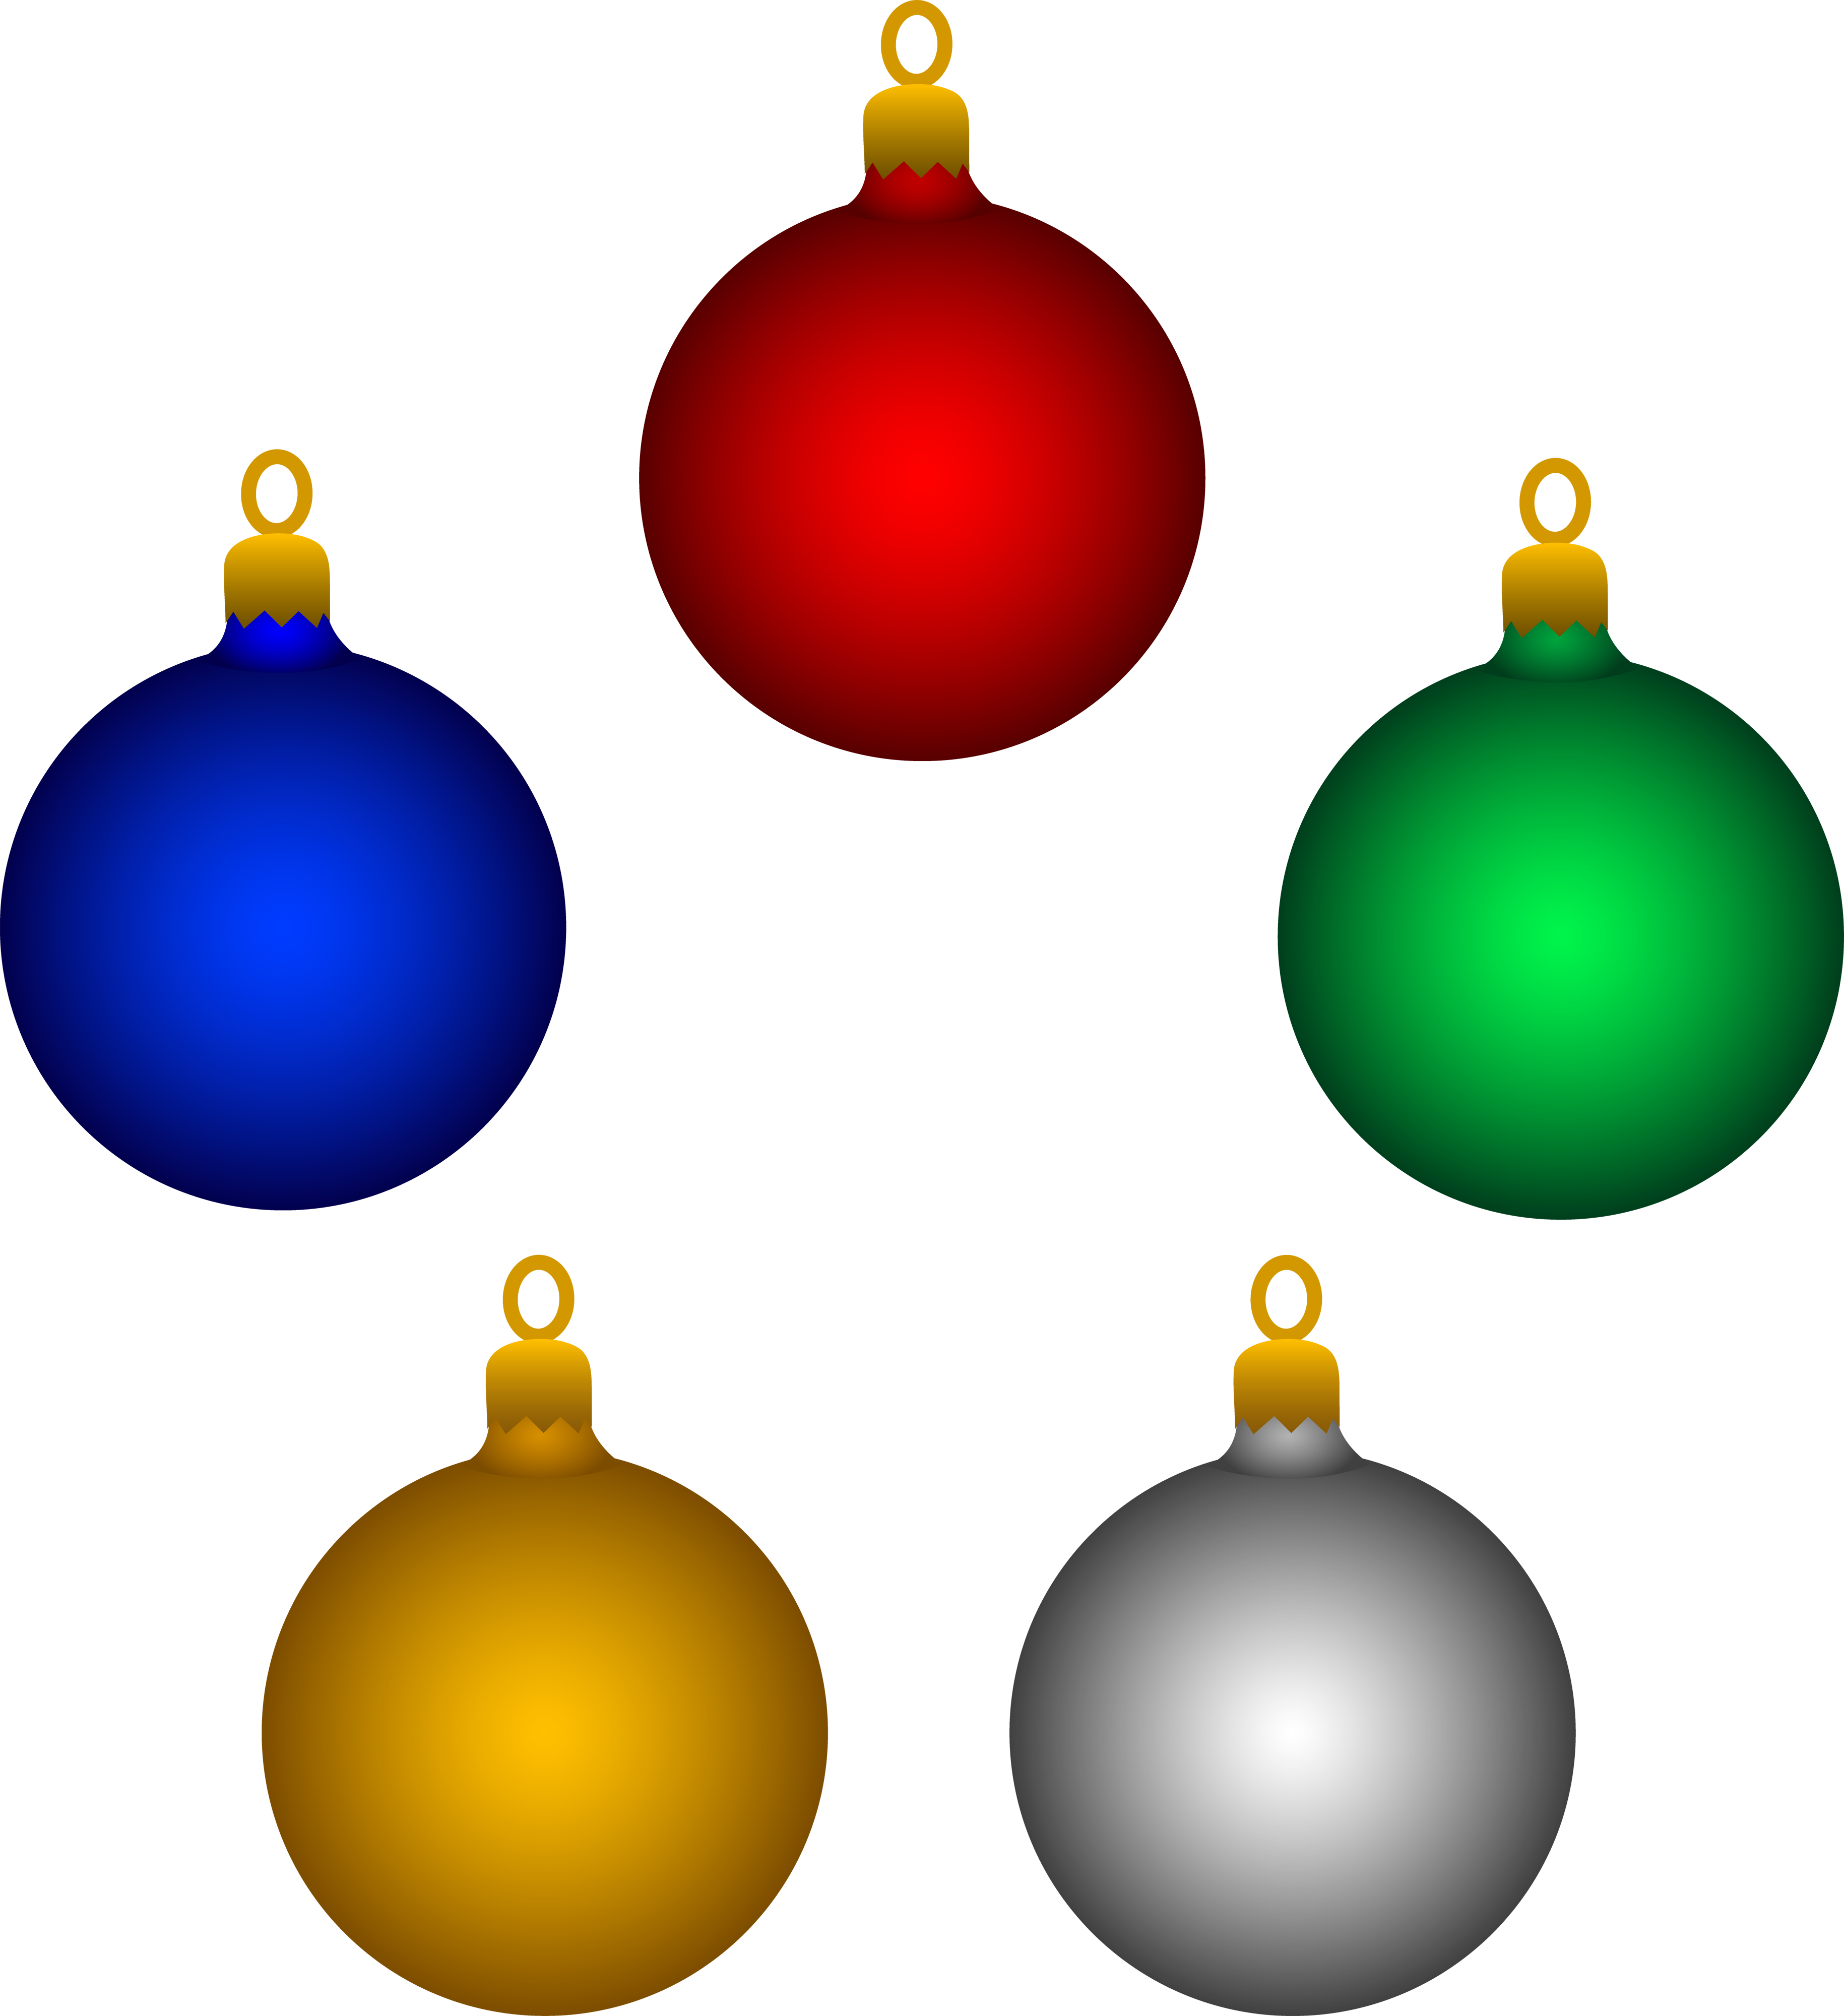 png Ornaments clipart. Christmas tree